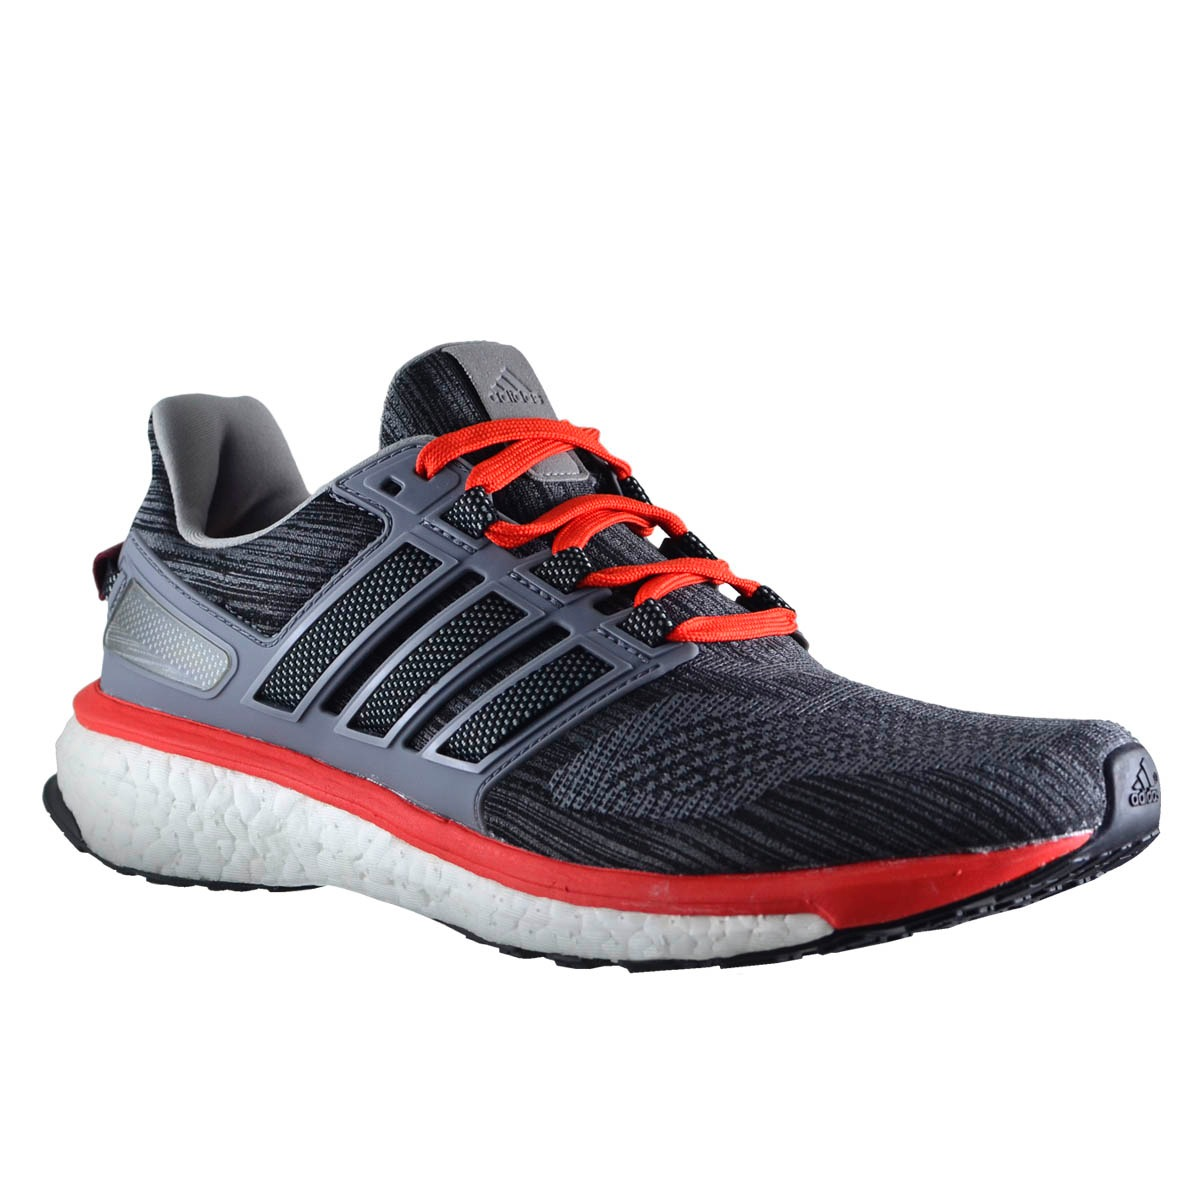 wholesale dealer 419e8 ba211 ... wholesale zapatillas adidas energy boost 3 hombre gris. cargando zoom.  320ea a15f7